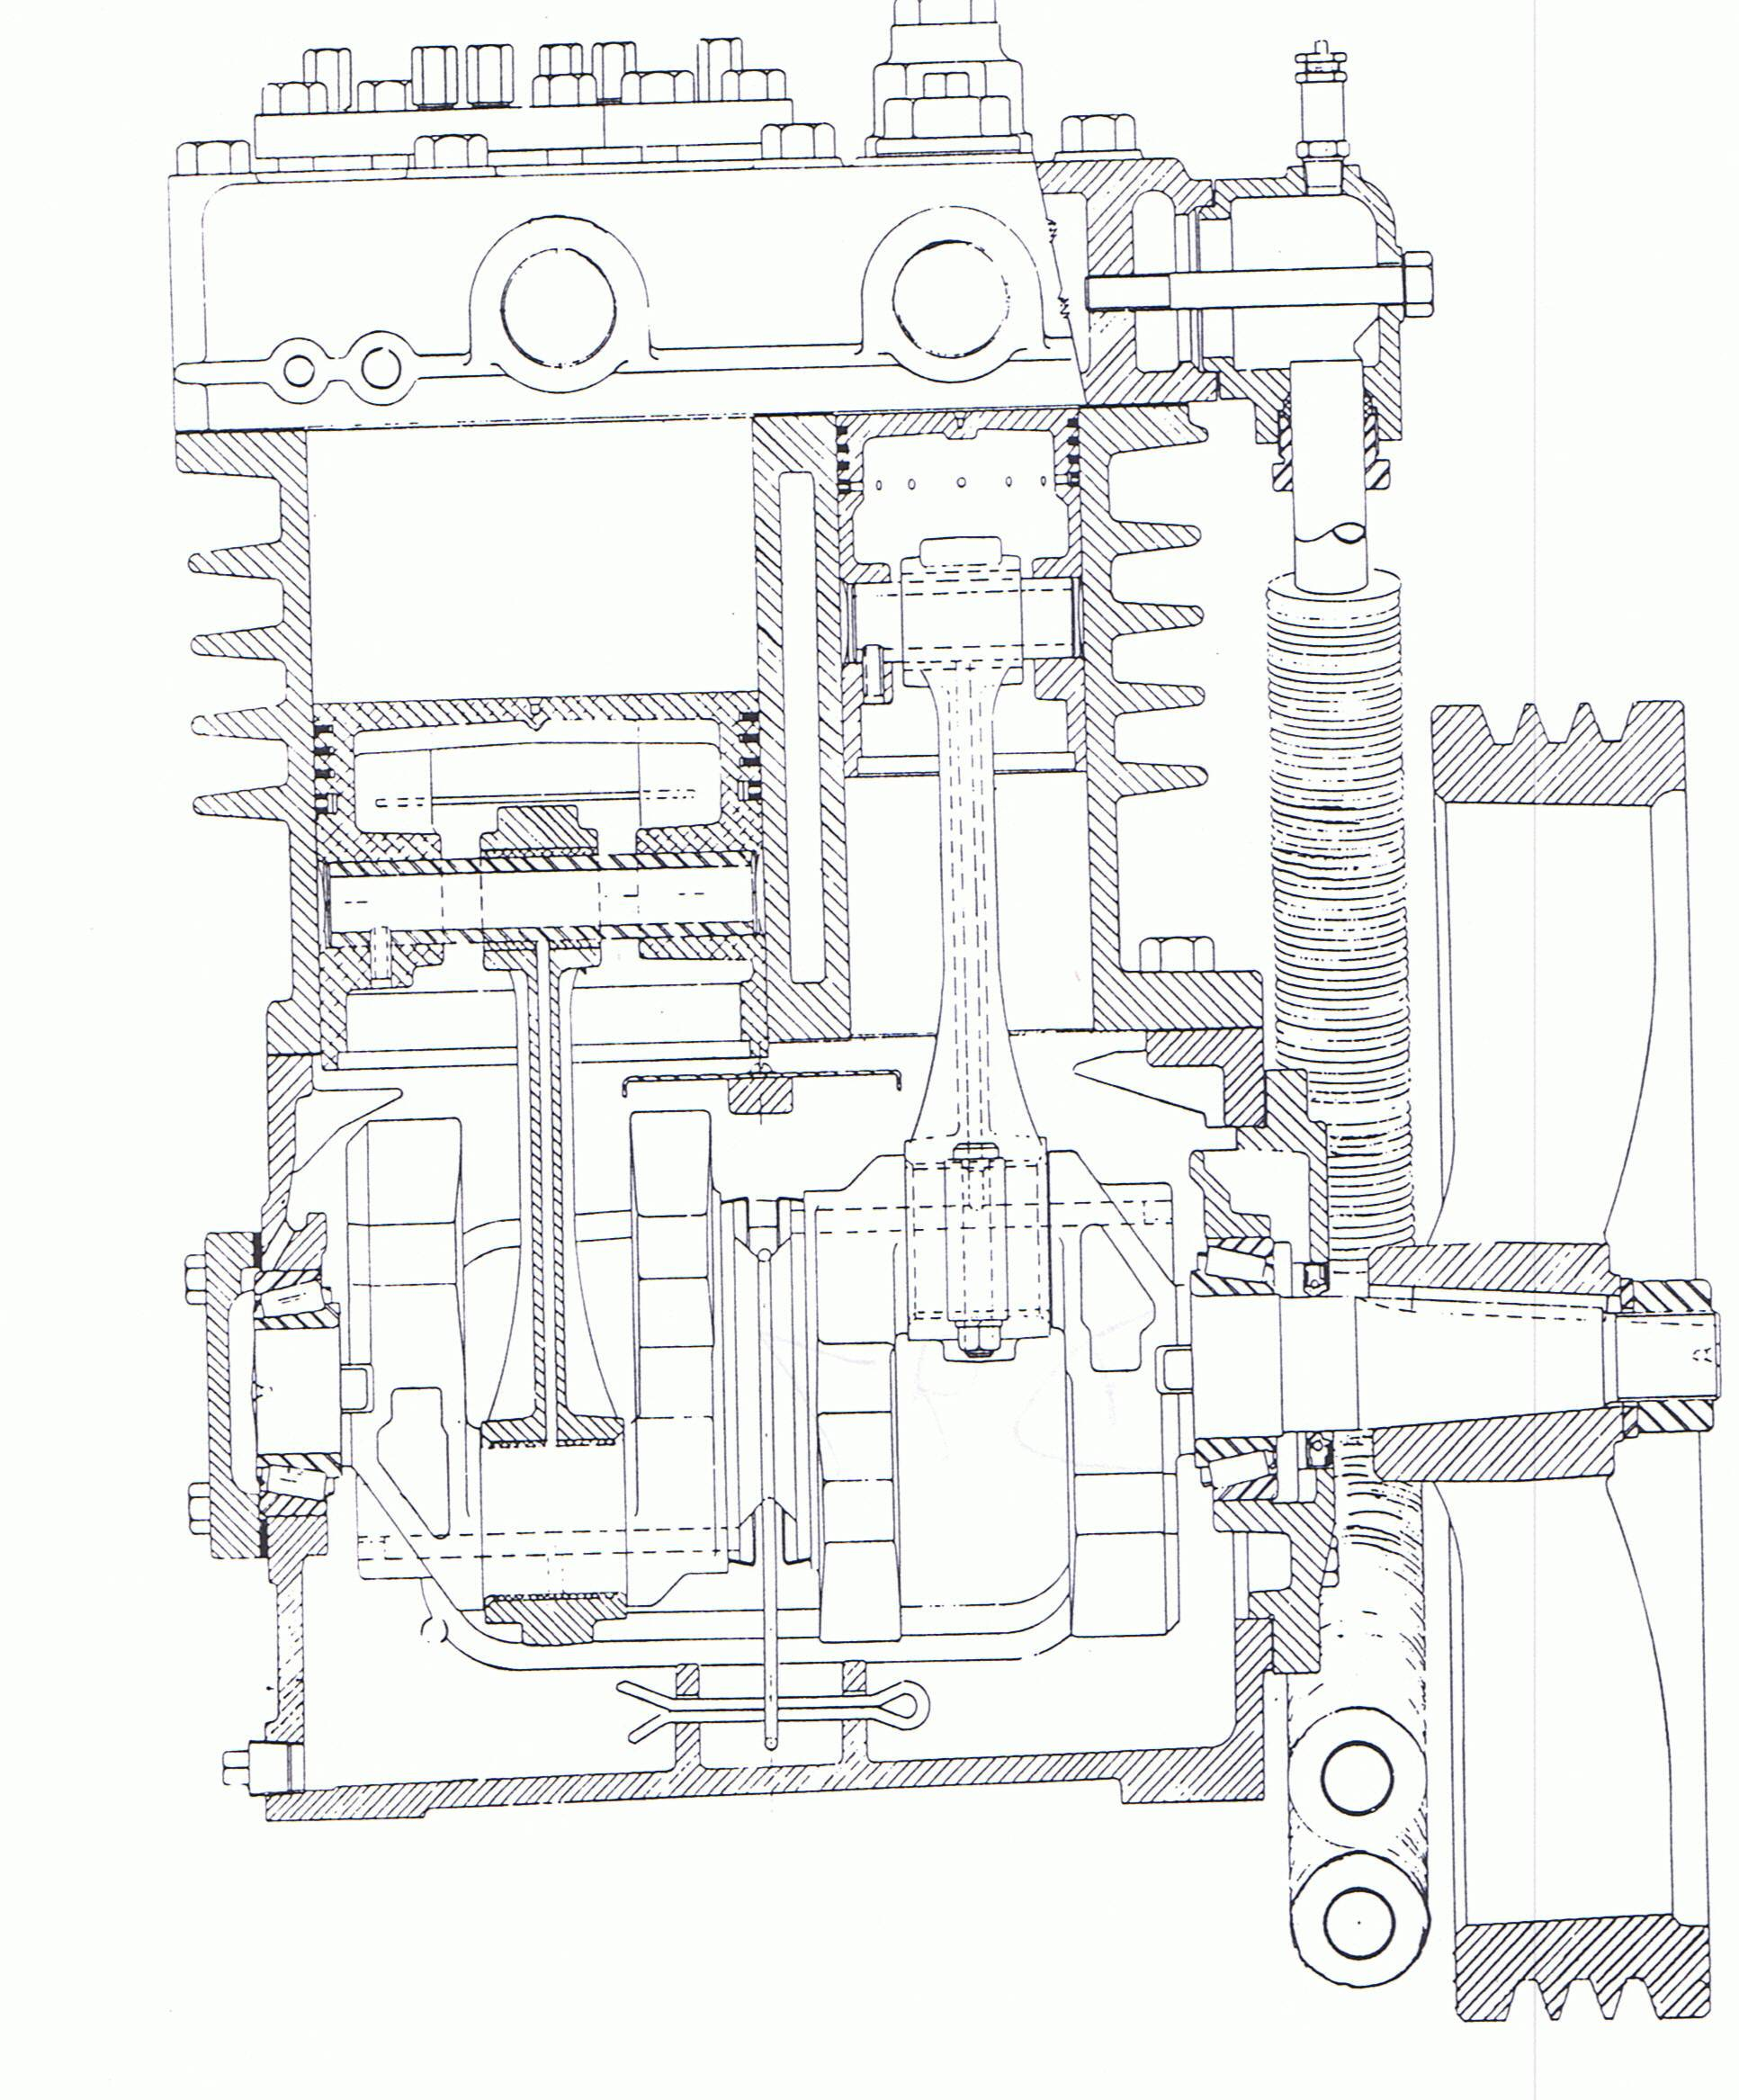 compressor wiring diagram for honeywell thermostat rth2300b curtis toledo air westinghouse